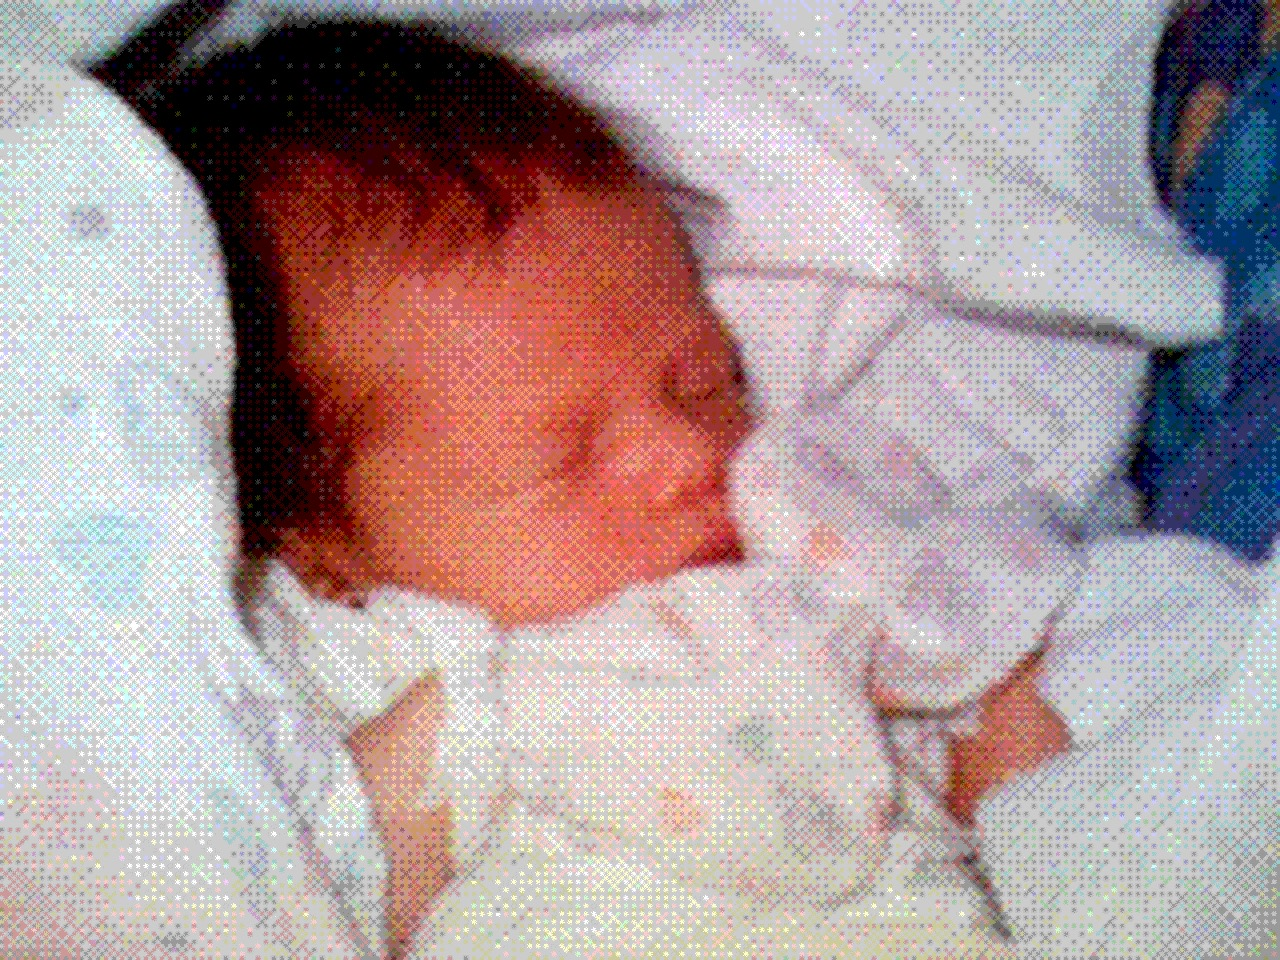 Philippe Kahn's first camera phone picture of daughter, Sophie Kahn